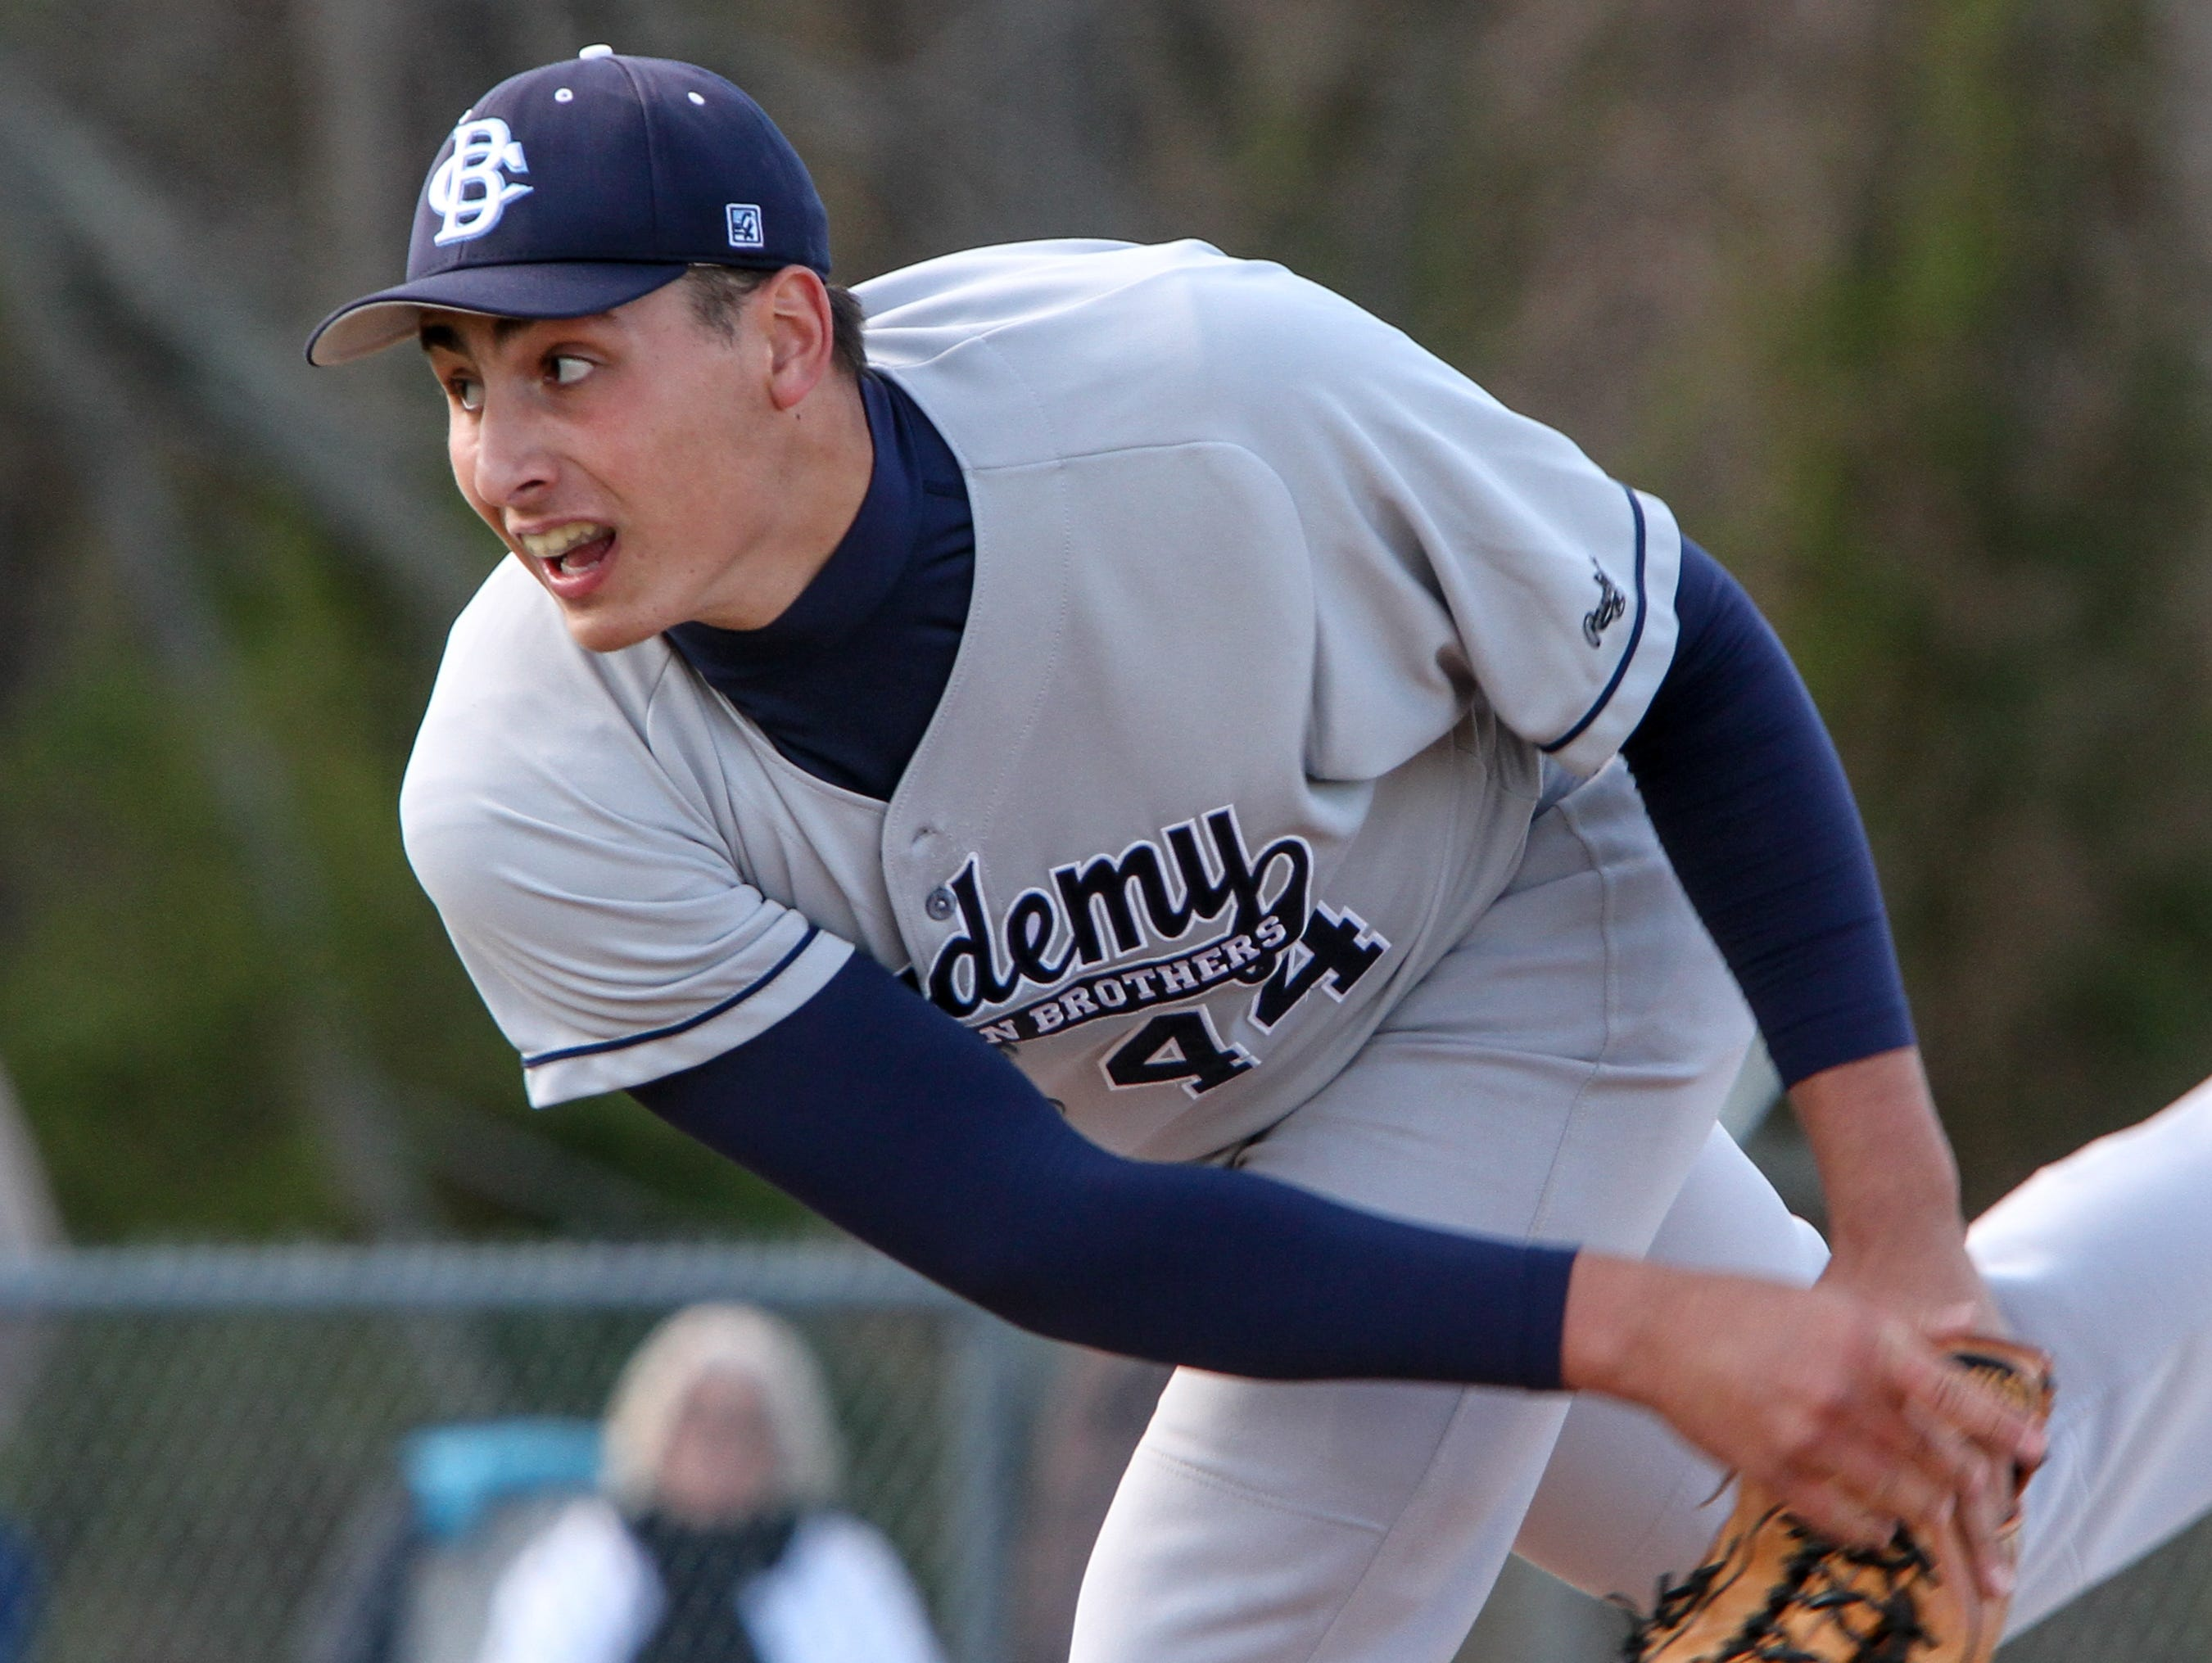 Christian Brothers Academy junior right-hander Luca Dalatri, shown pitching against Marlboro at Marlboro on April 24, was the winning pitcher in the Colts' 3-2 win over Manalapan Tuesday in a Monmouth County Tournament semifinal